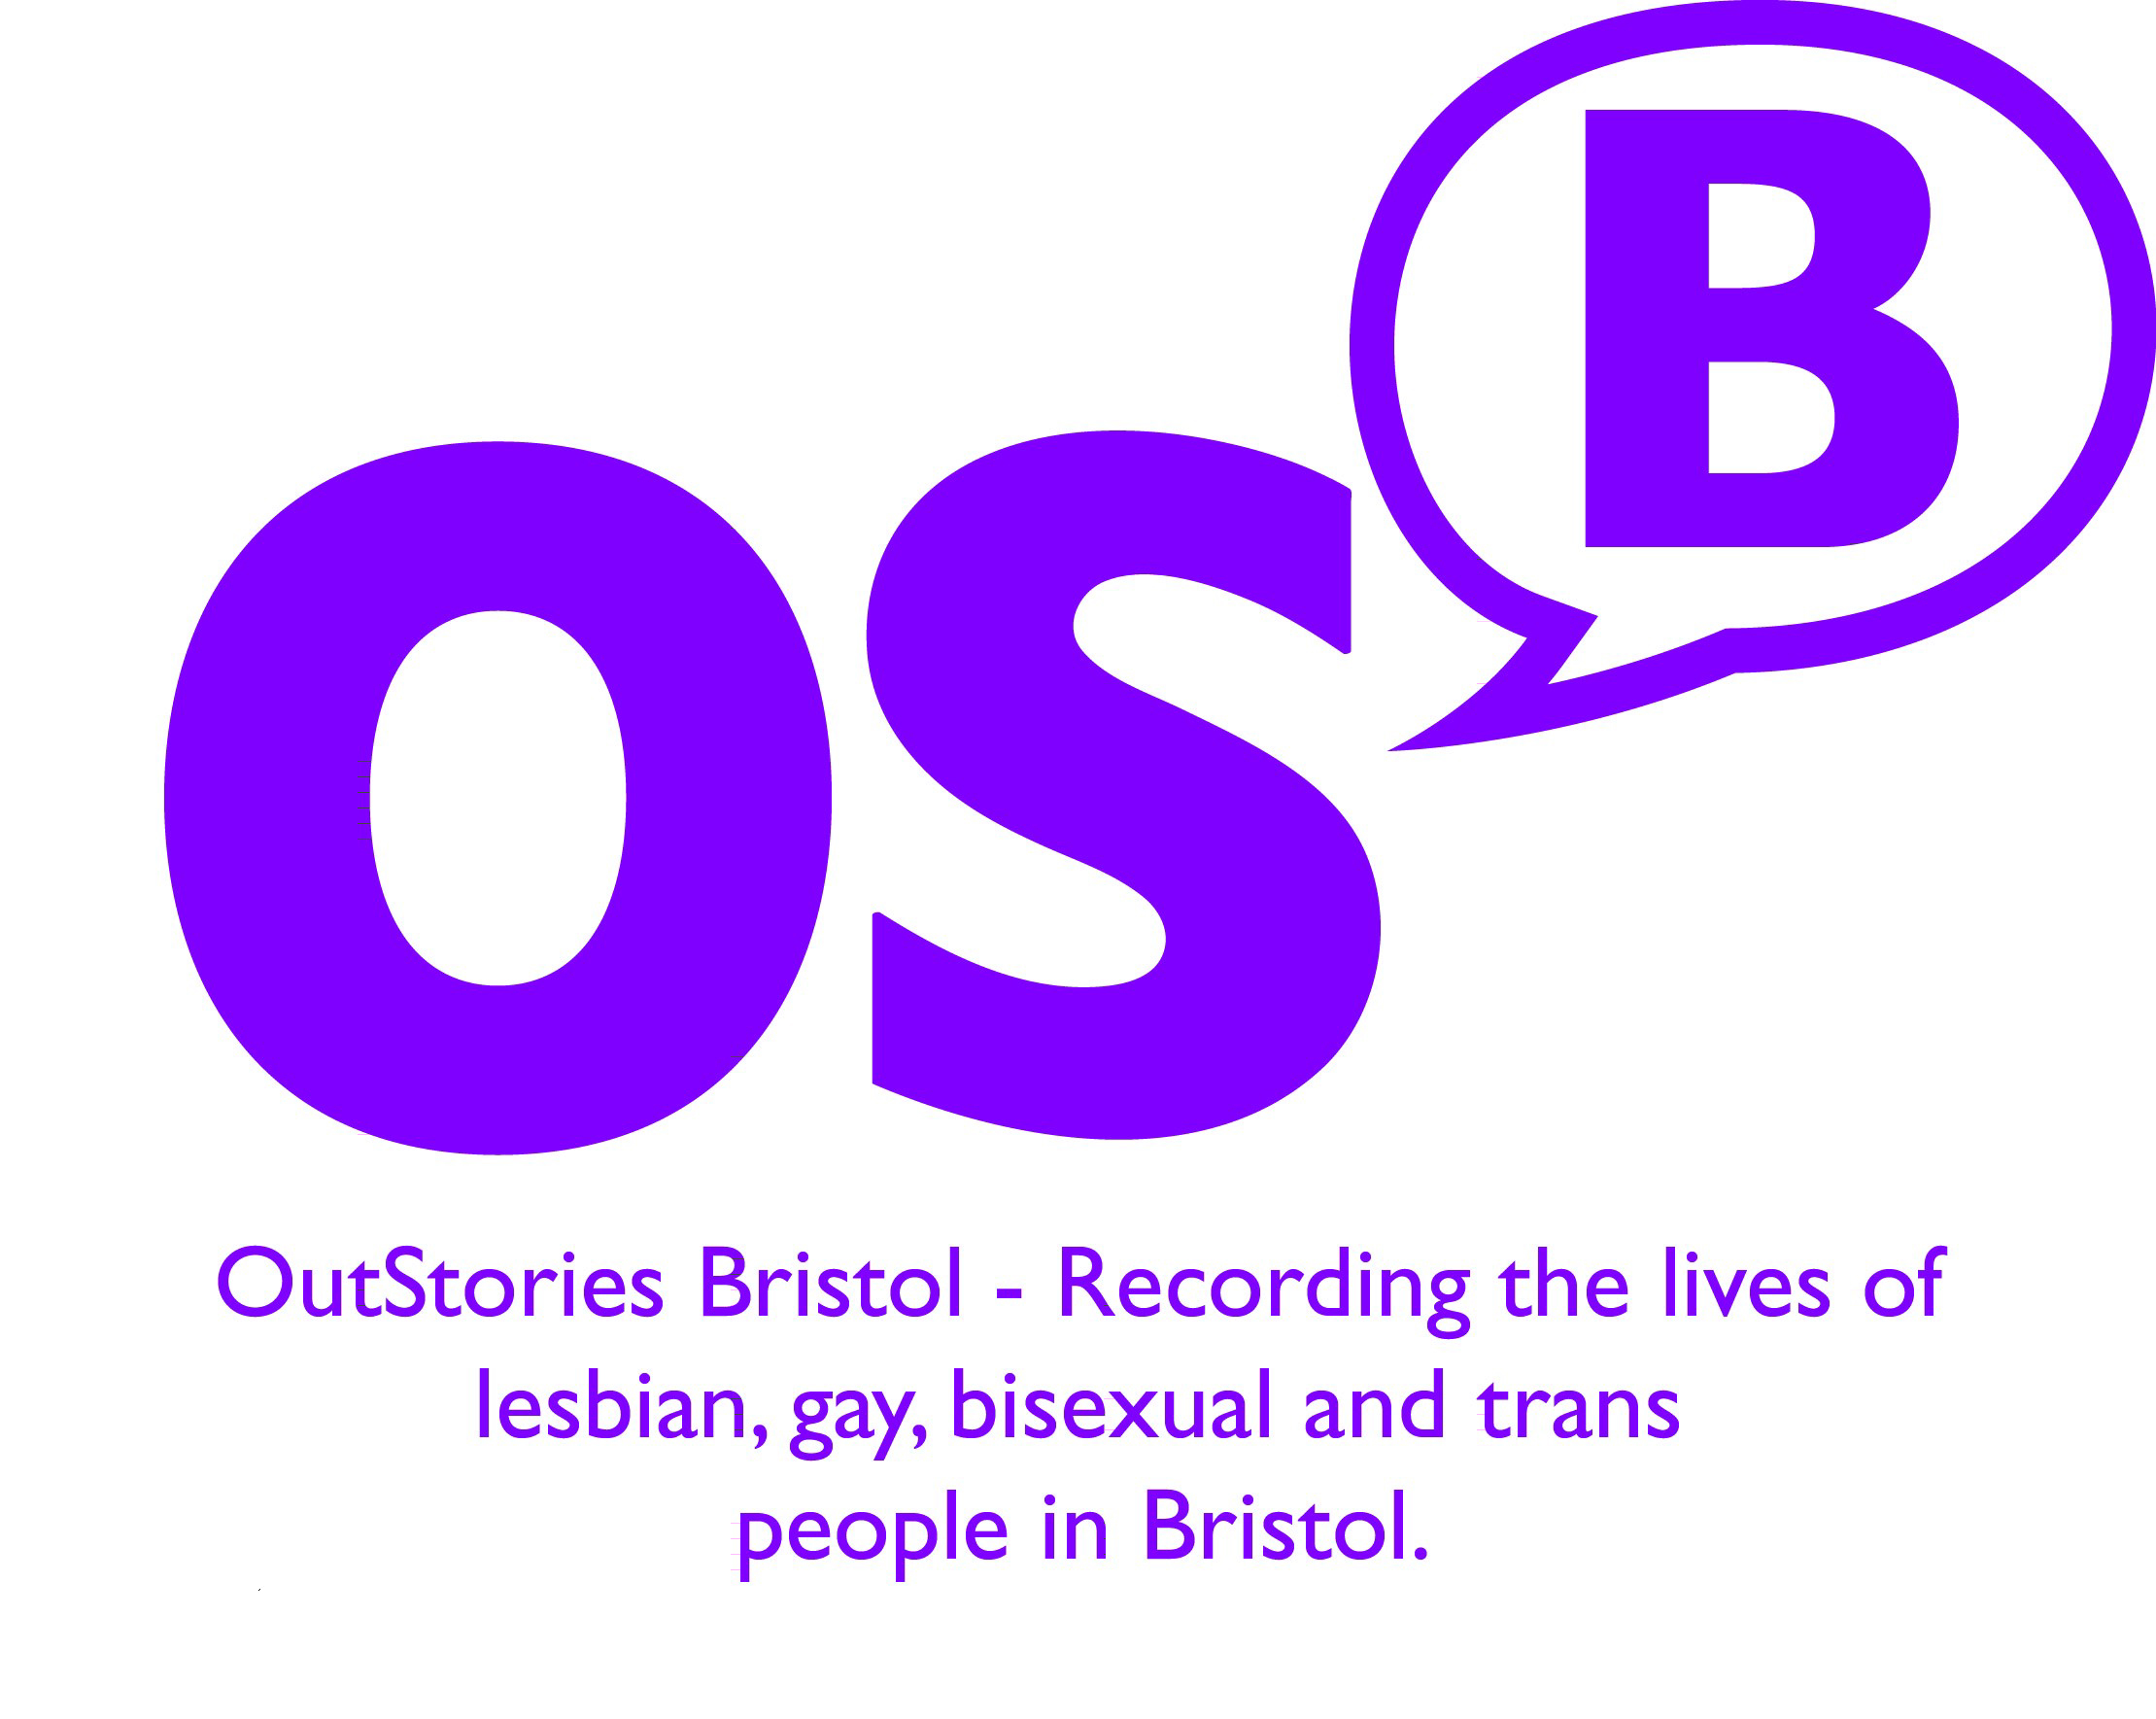 Out Stories Bristol website